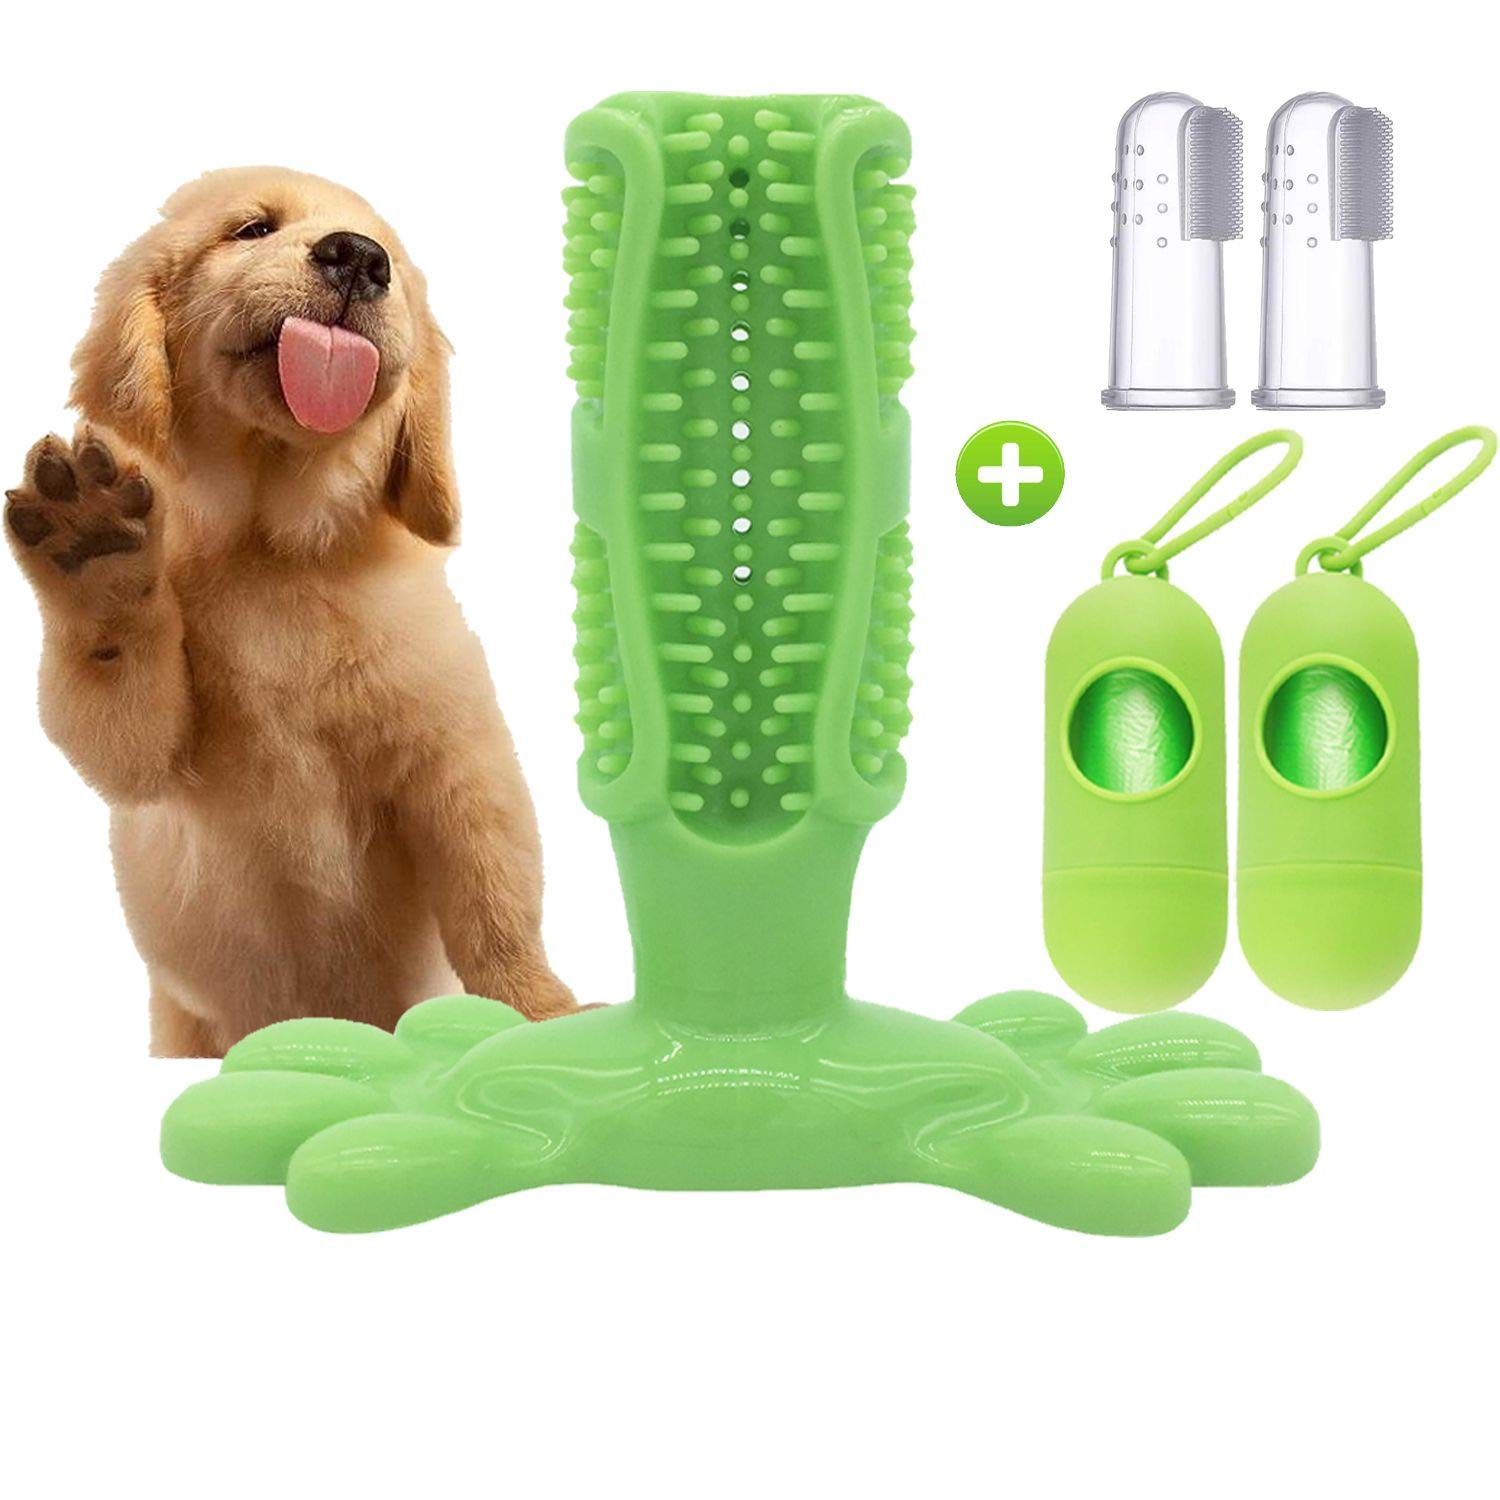 YALOON Dog Toothbrush with 2 Sets of Dog Poop Bags & 2pcs of Silicone Finger Toothbrush for Small & Medium Dogs (10LBS-30LBS), Green 5inch by YALOON